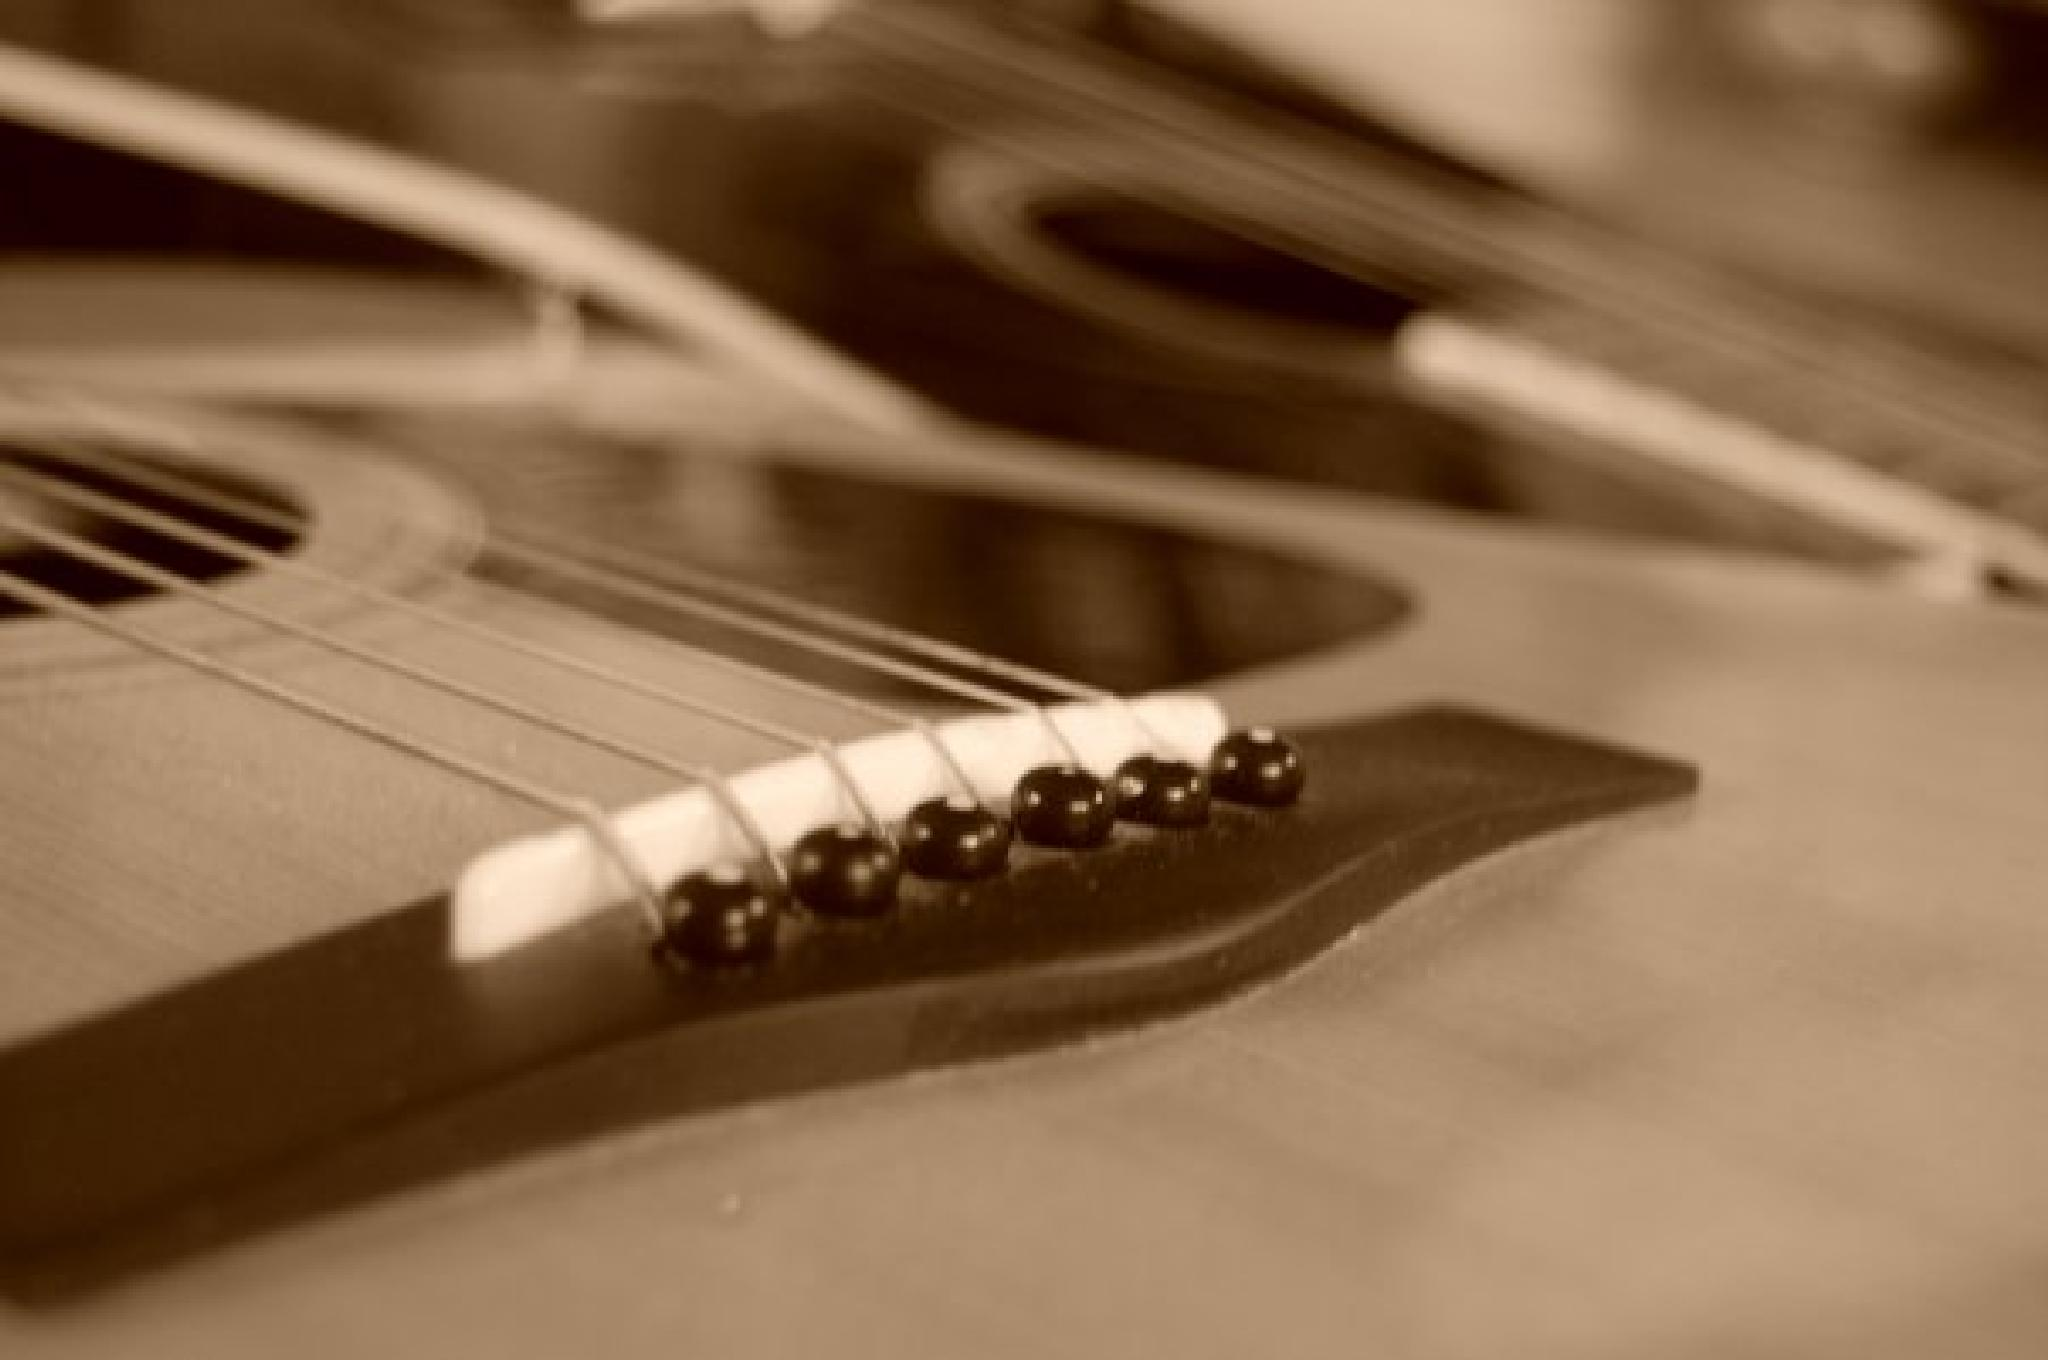 two guitars by kristin j clevenger